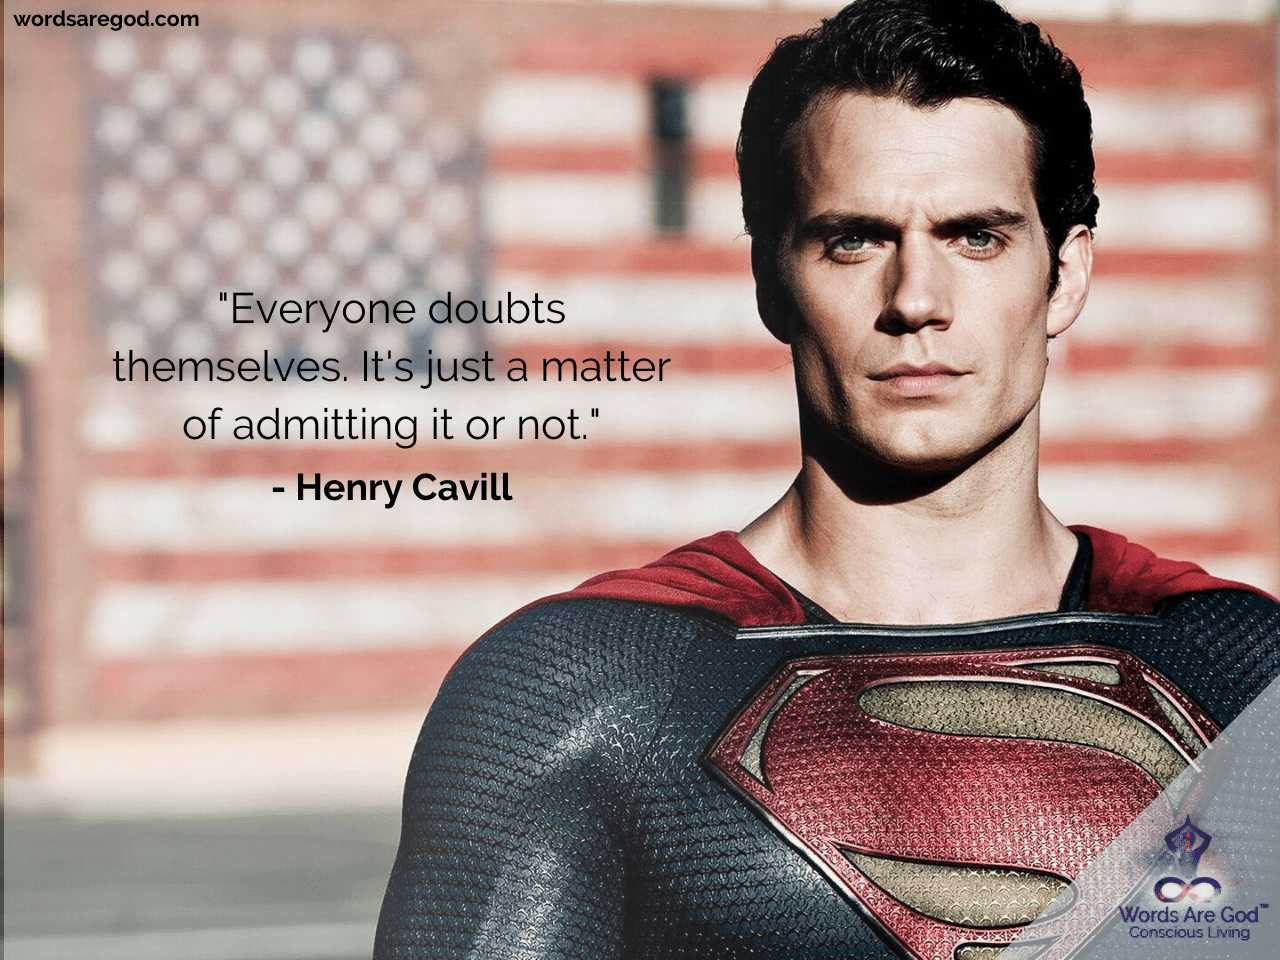 Henry Cavill Inspirational Quotes